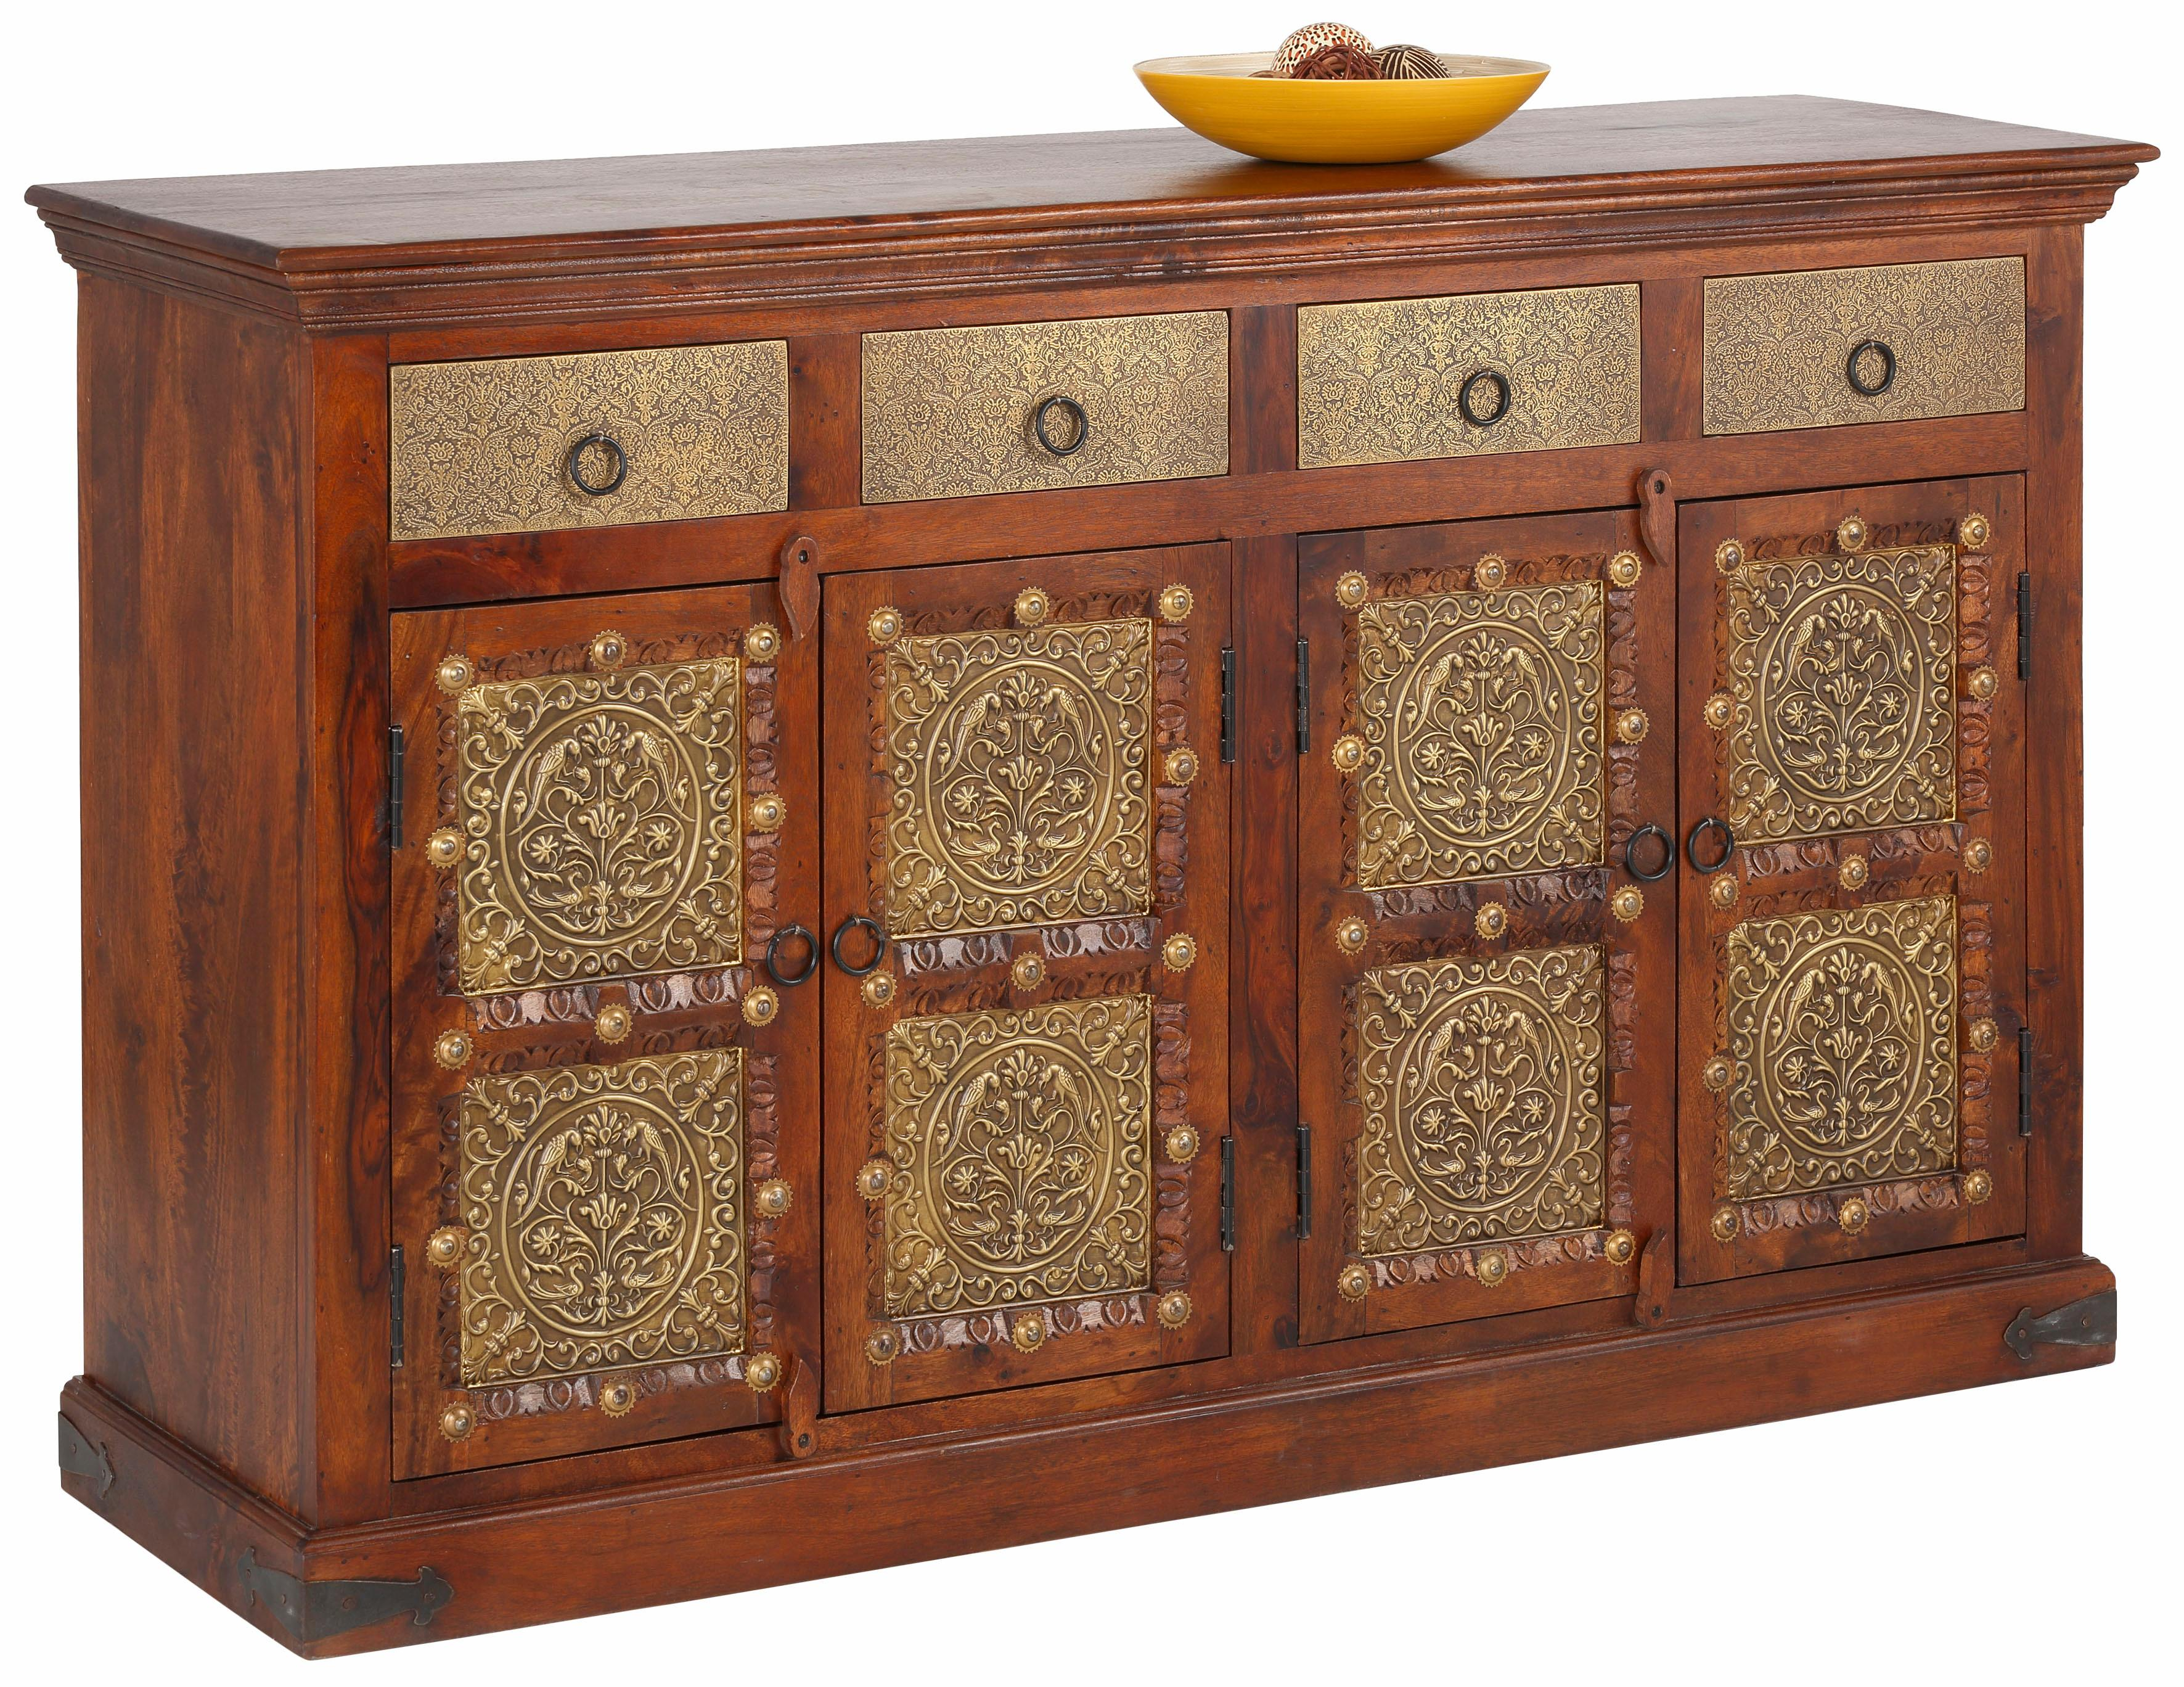 Home affaire Sideboard Marco Breite 146 cm